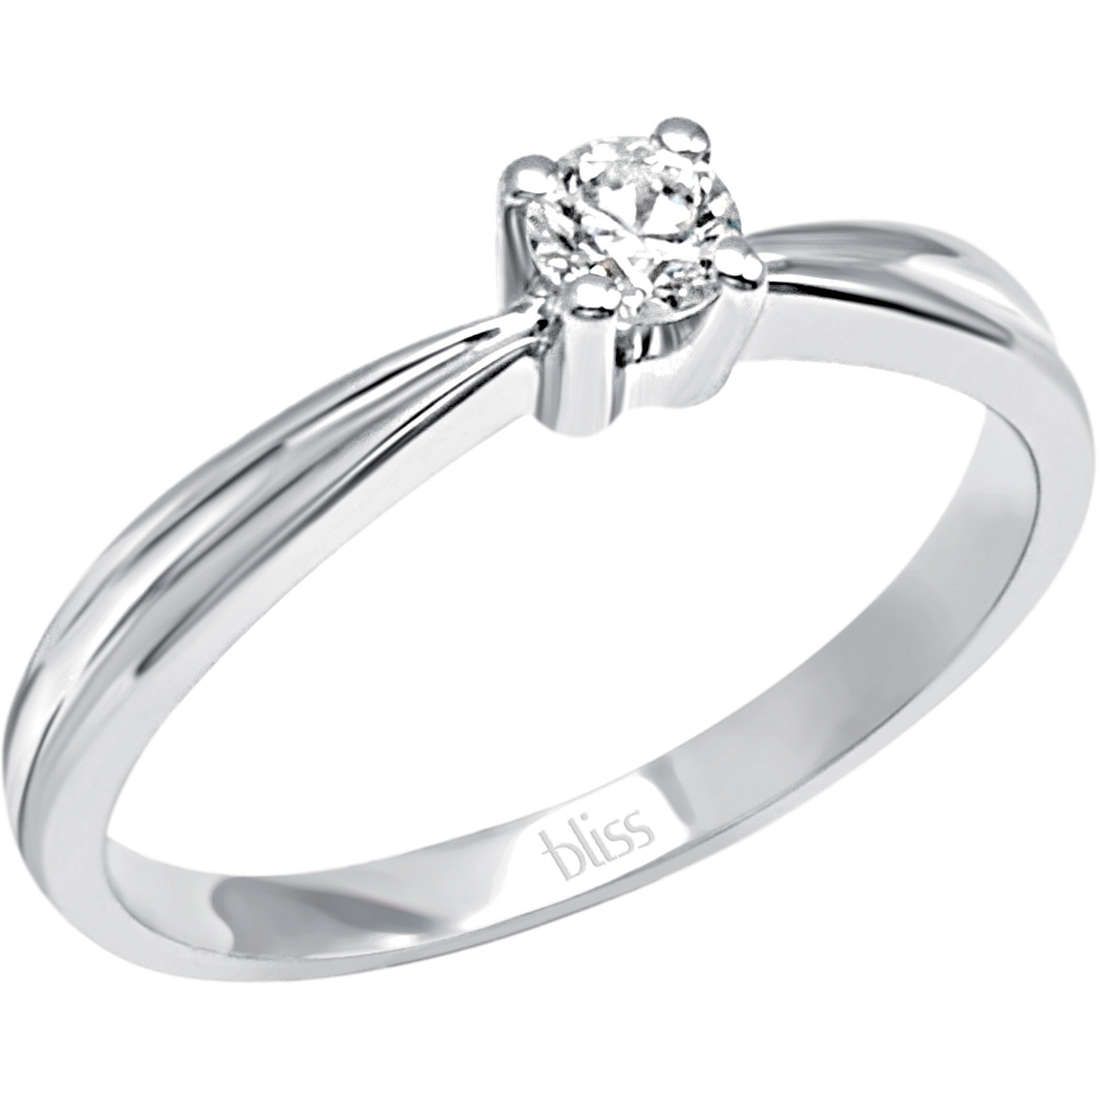 Bliss solitaire ring white gold and diamonds ct 0,06 Athena Ref. 20069847